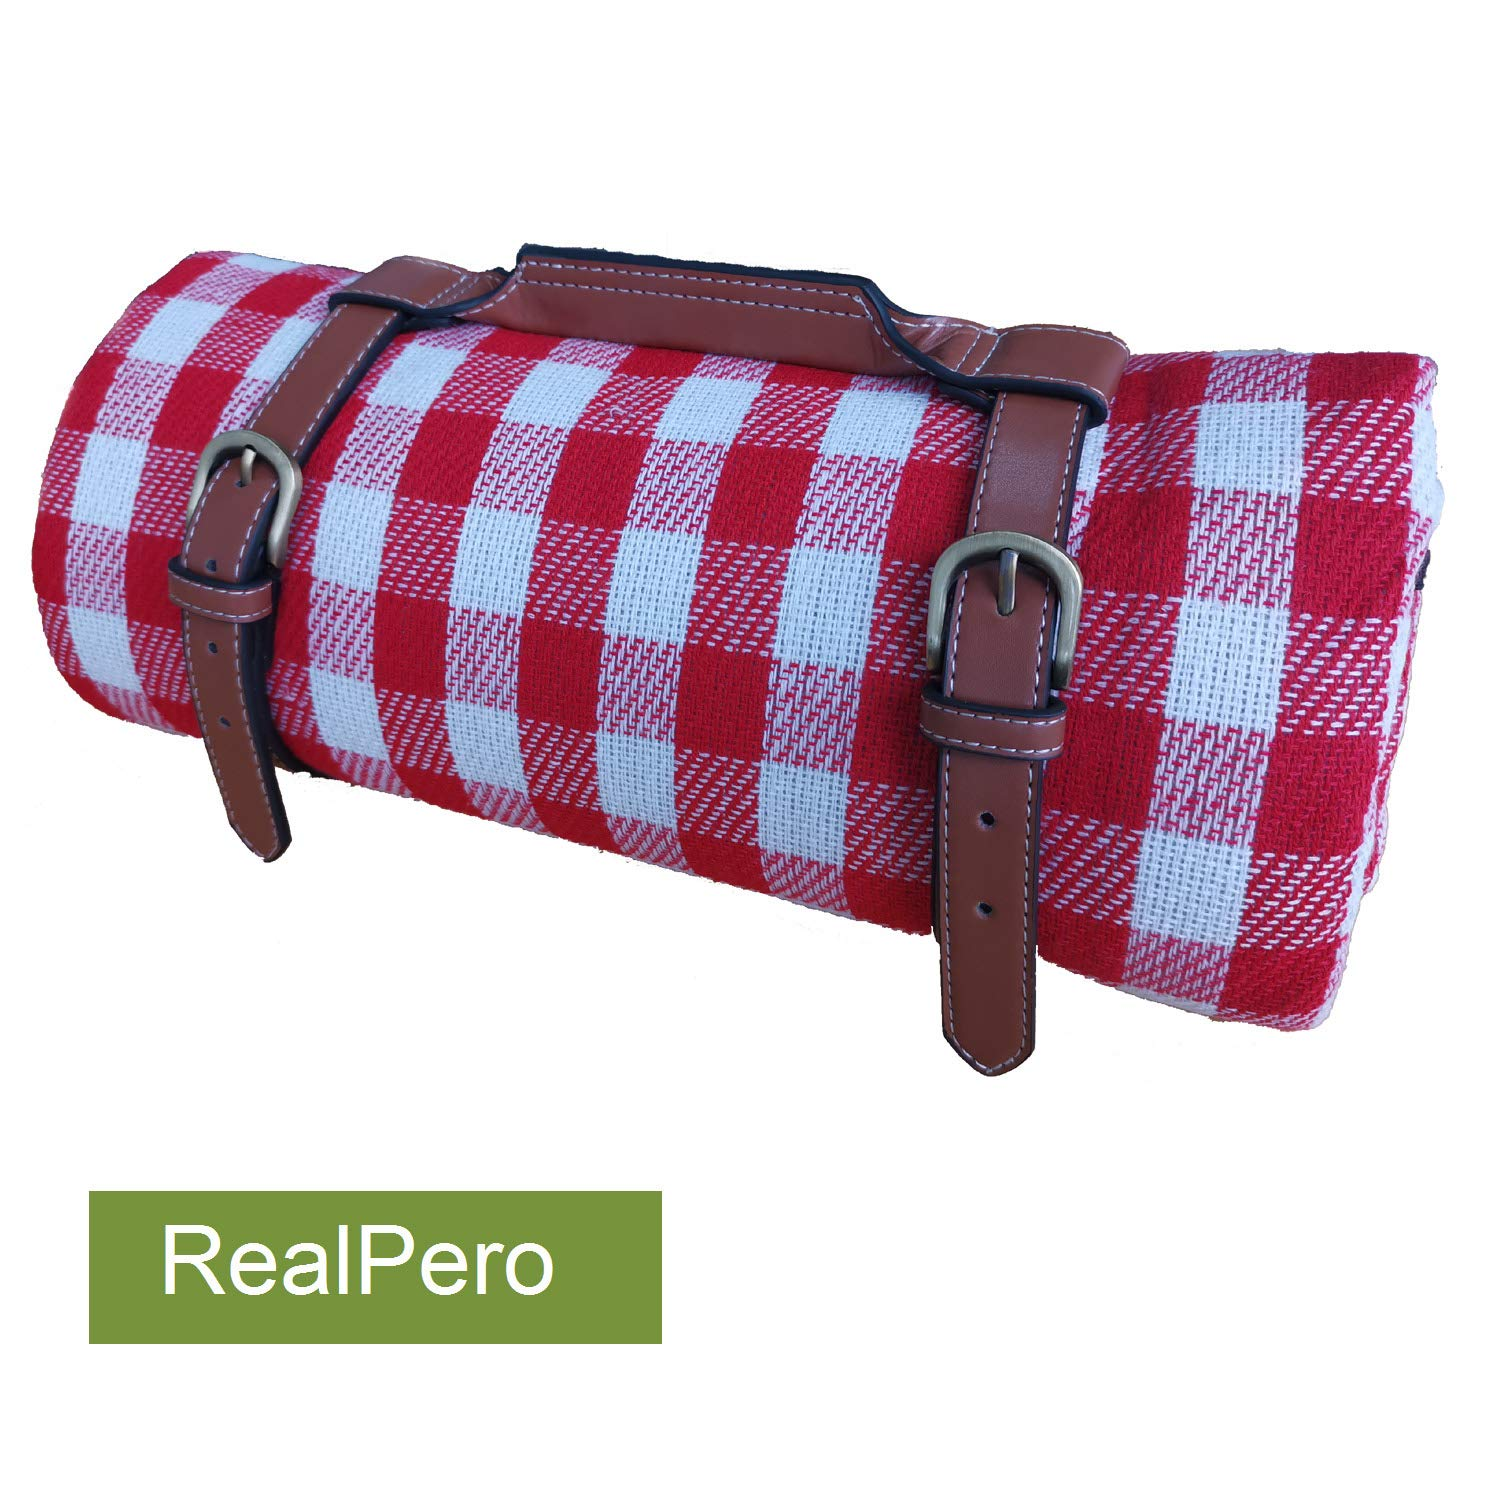 RealPero Extra Large Picnic Blanket Family Size High-end Fabric with PU Carrier Classic Red White Plaid Waterproof Light Weight and Portable Skin Friendly Outdoor Mat for Travel Lawn Sand-Proof Beach by RealPero